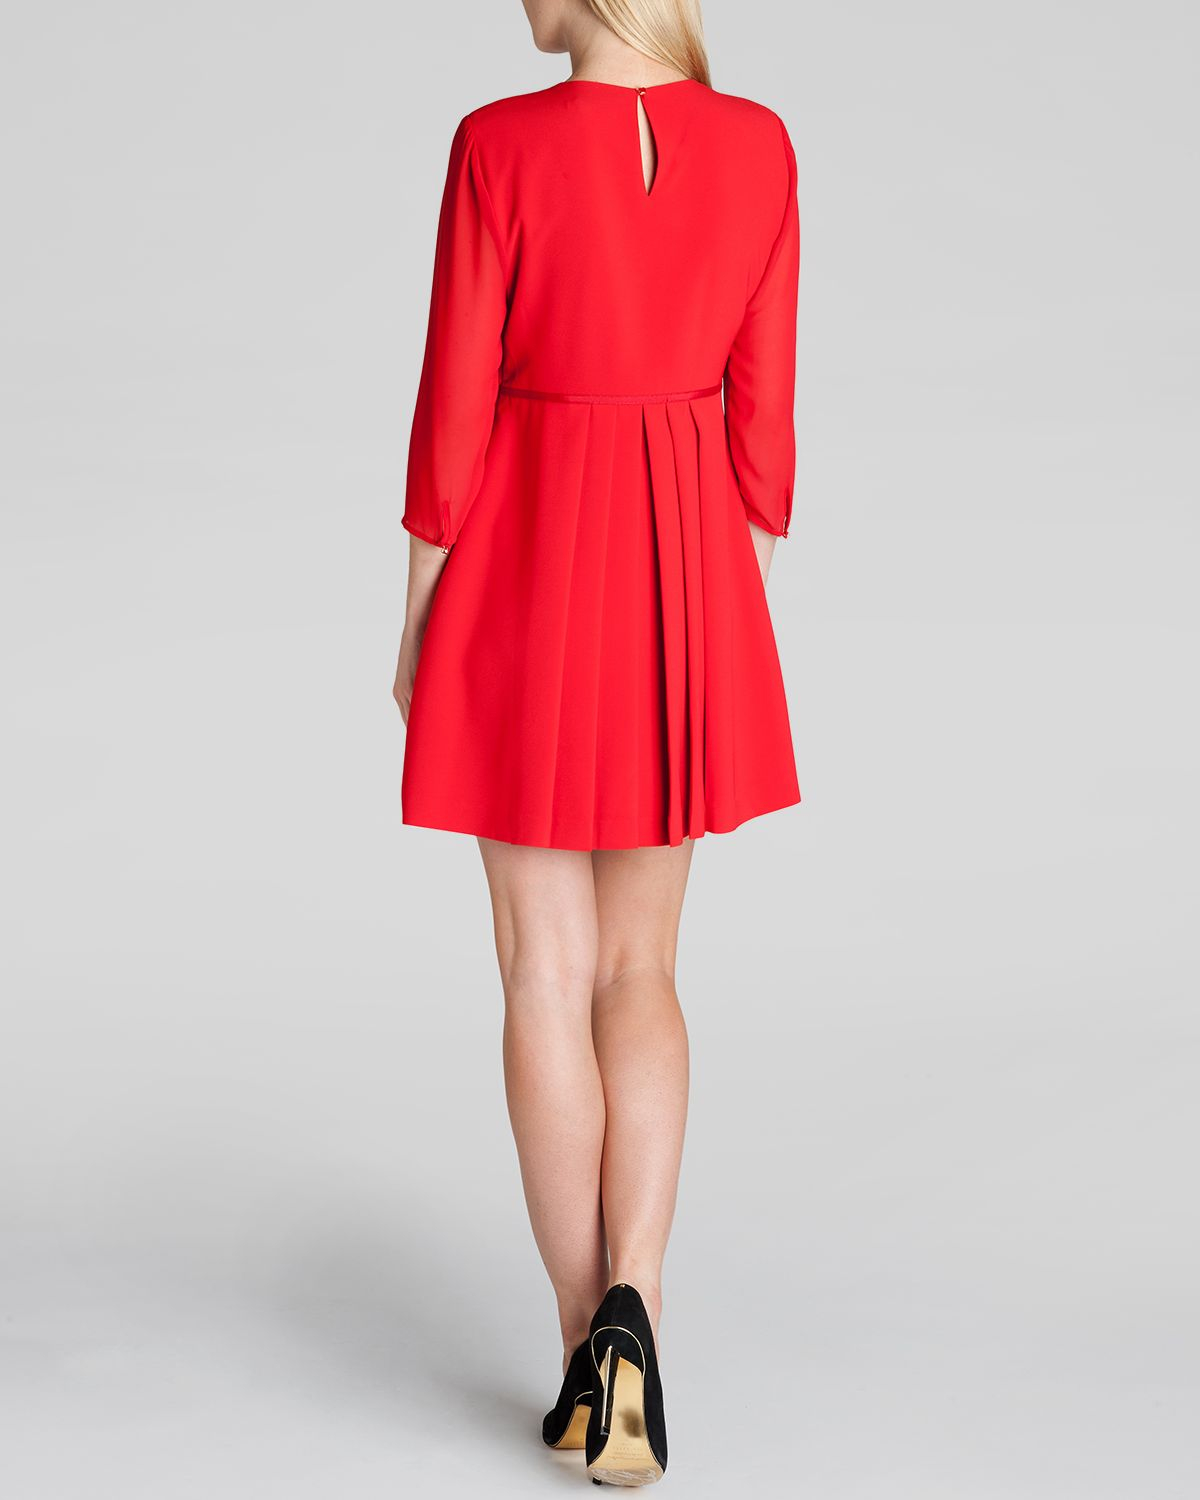 4f8026b0c4ed51 Lyst - Ted Baker Dress - Finna Bow Detail in Red